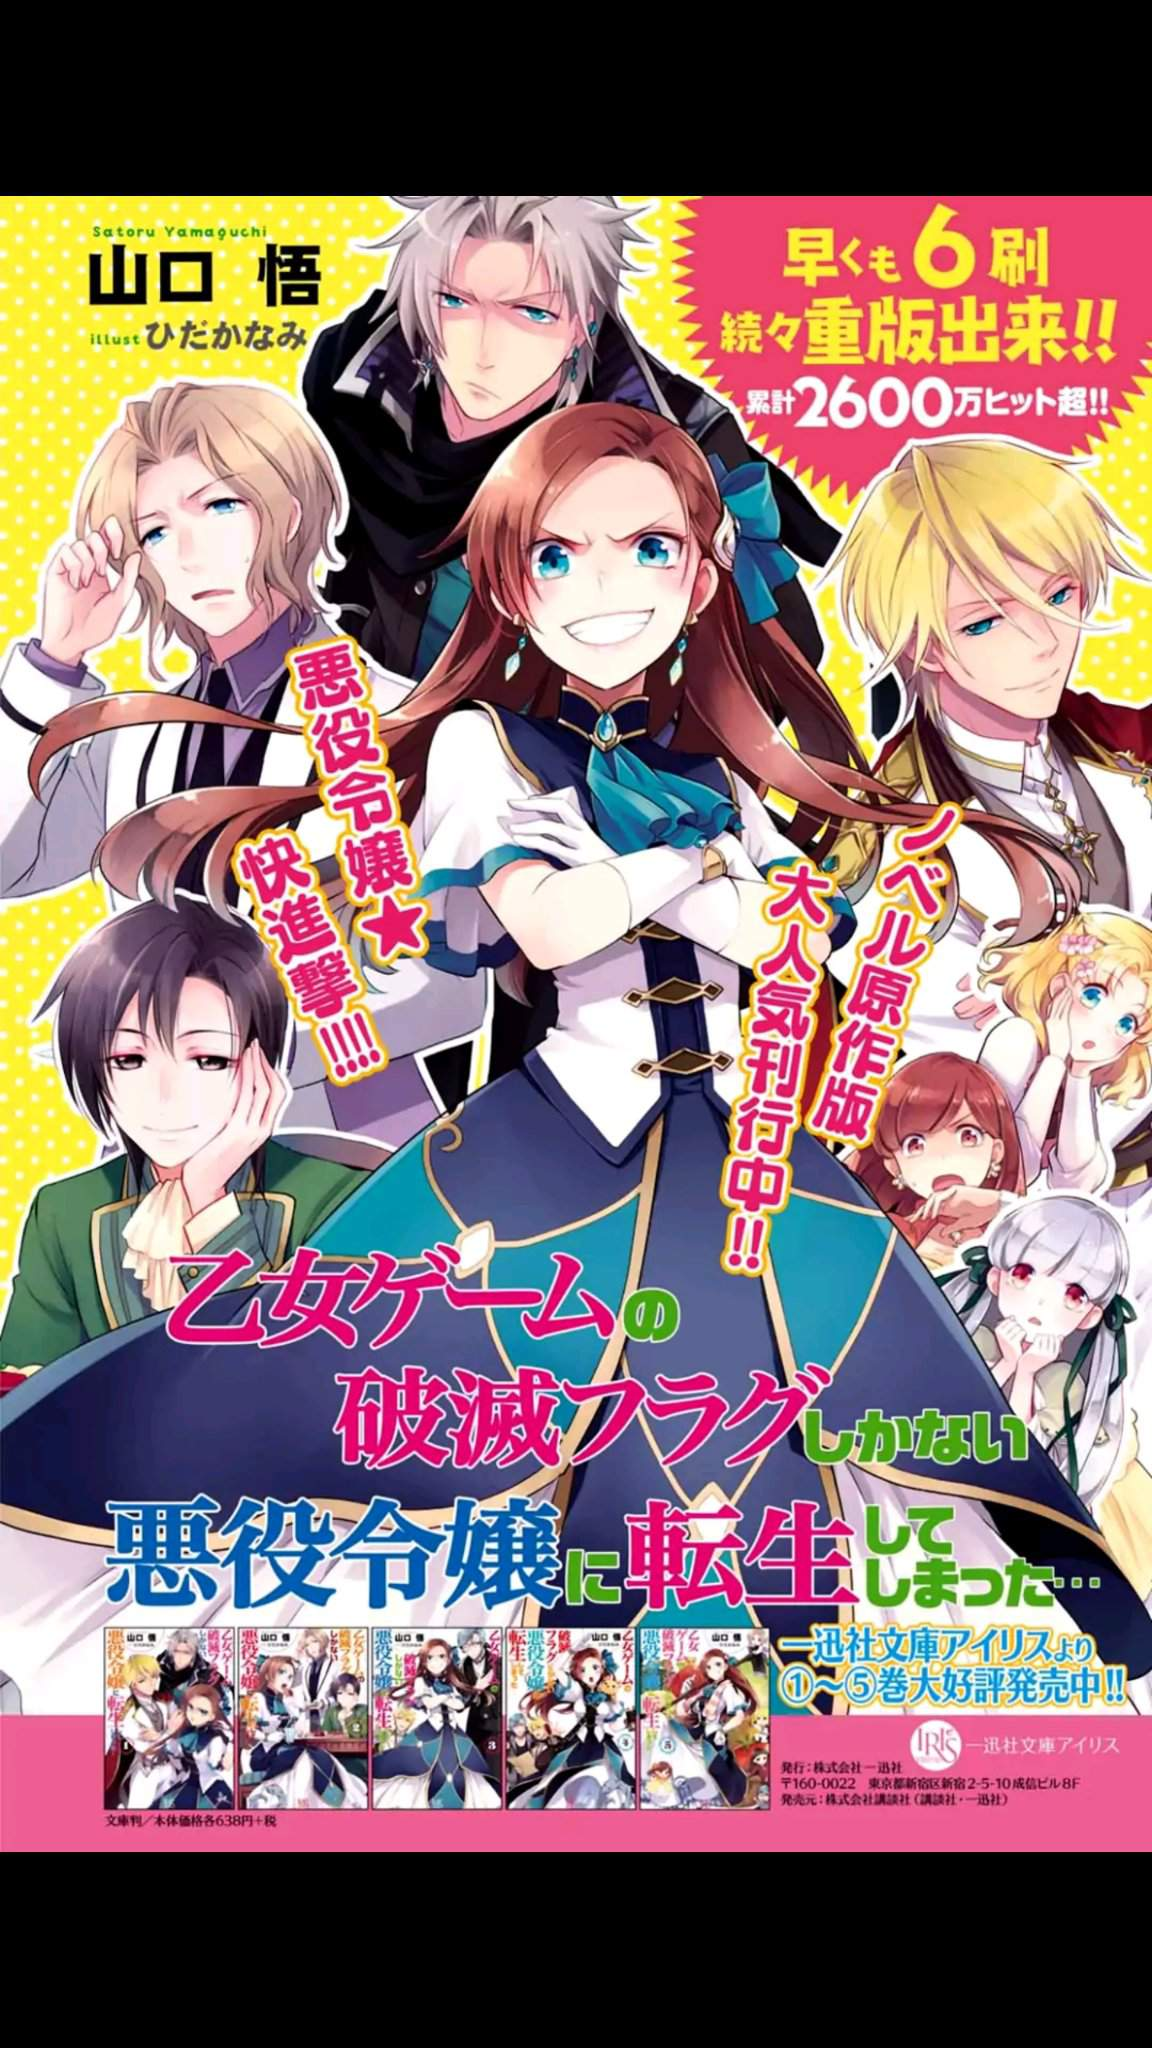 Read I Reincarnated into an Otome Game as a Villainess ...